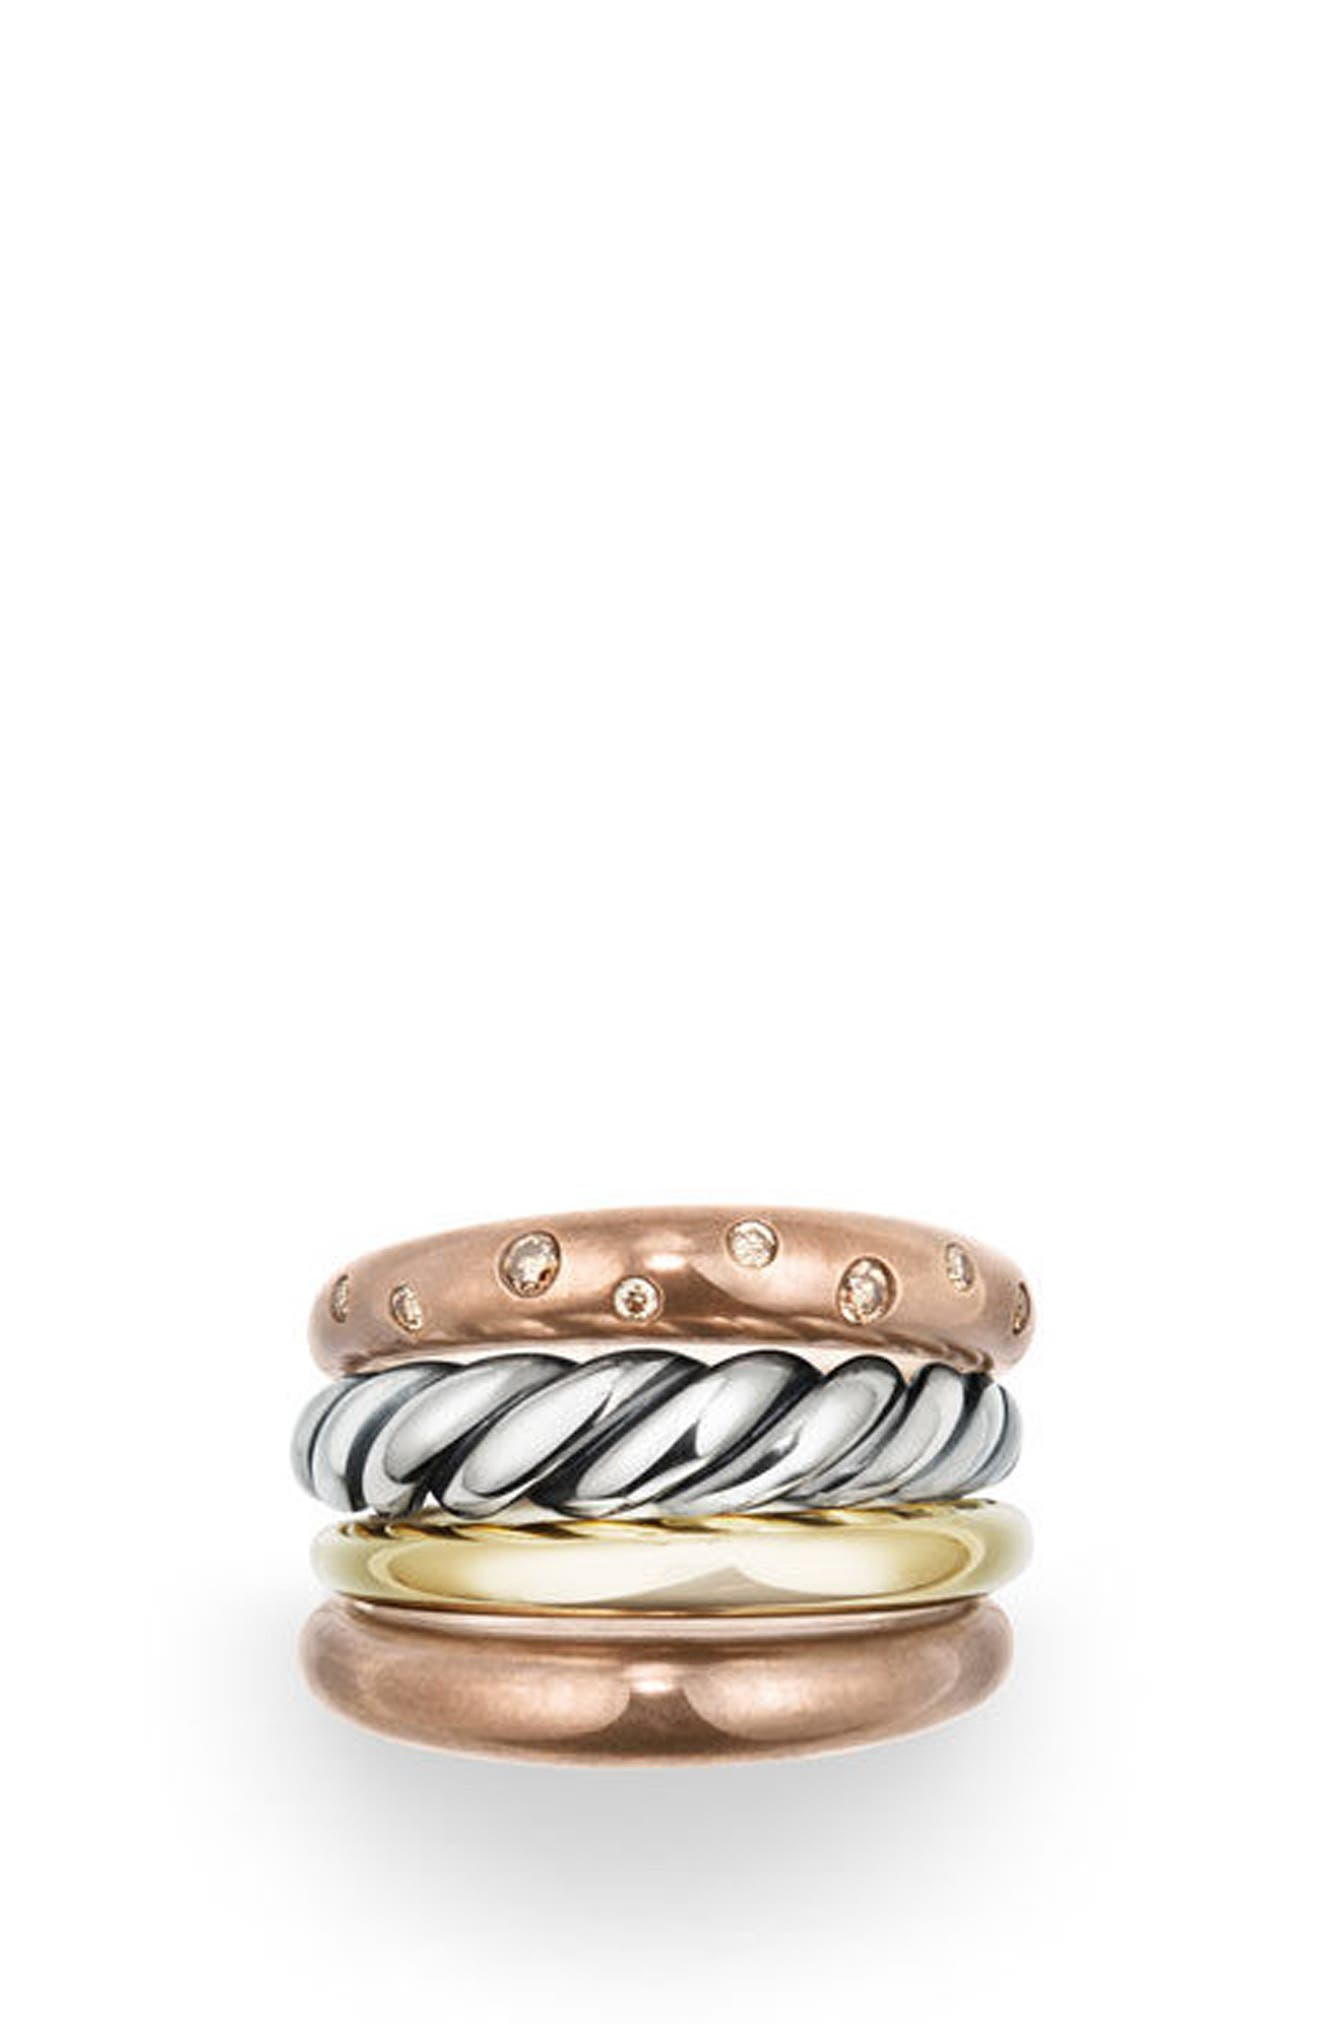 Pure Form Mixed Metal Four-Row Ring with Diamonds, Bronze & Silver, 17.5mm,                             Alternate thumbnail 2, color,                             Cognac